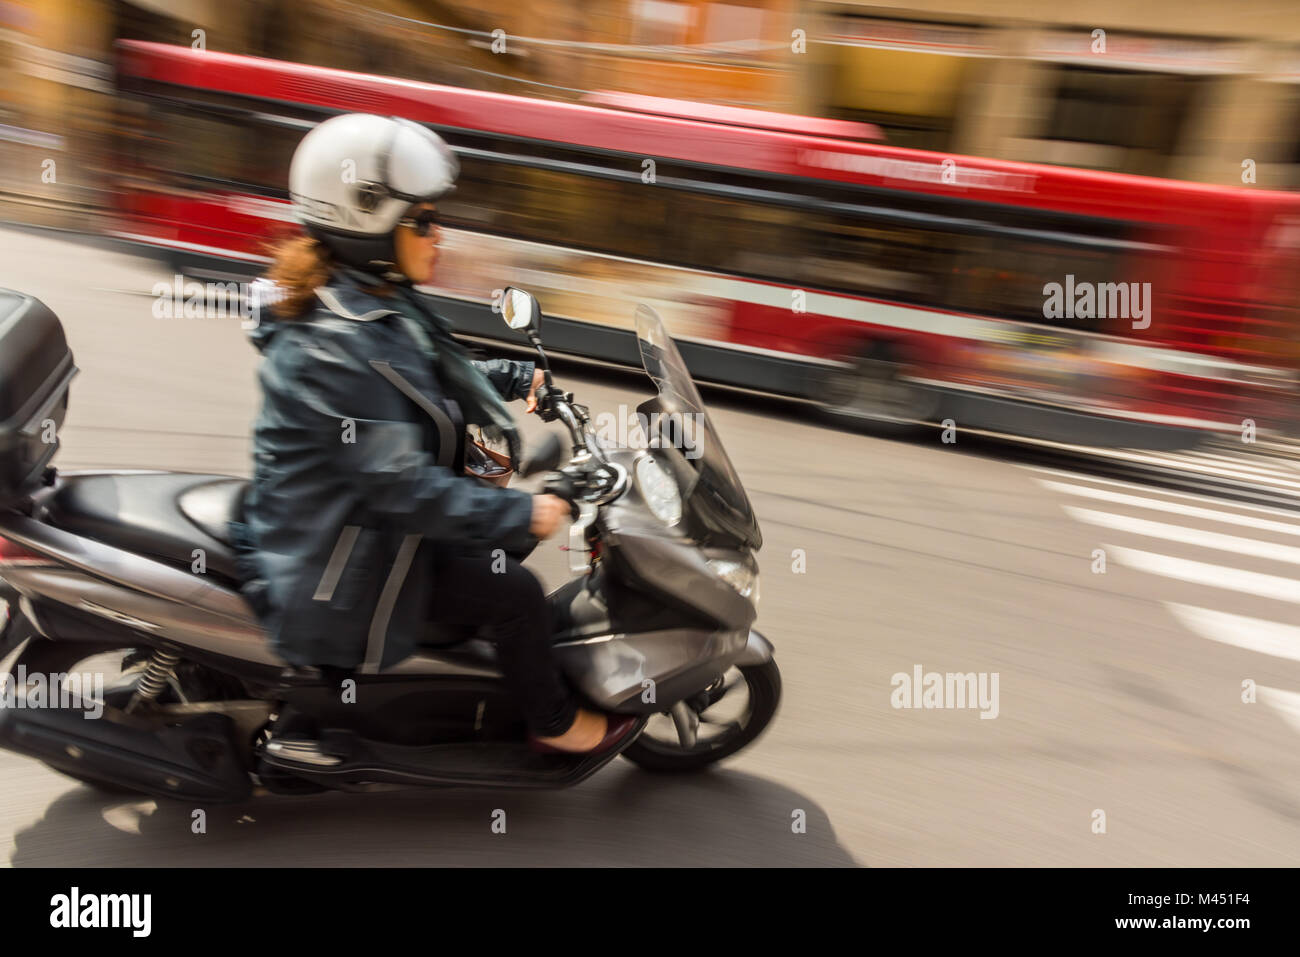 A motion blurred image of a woman on a motor scooter or motor bike in a street on the city of Bologna Italy giving - Stock Image